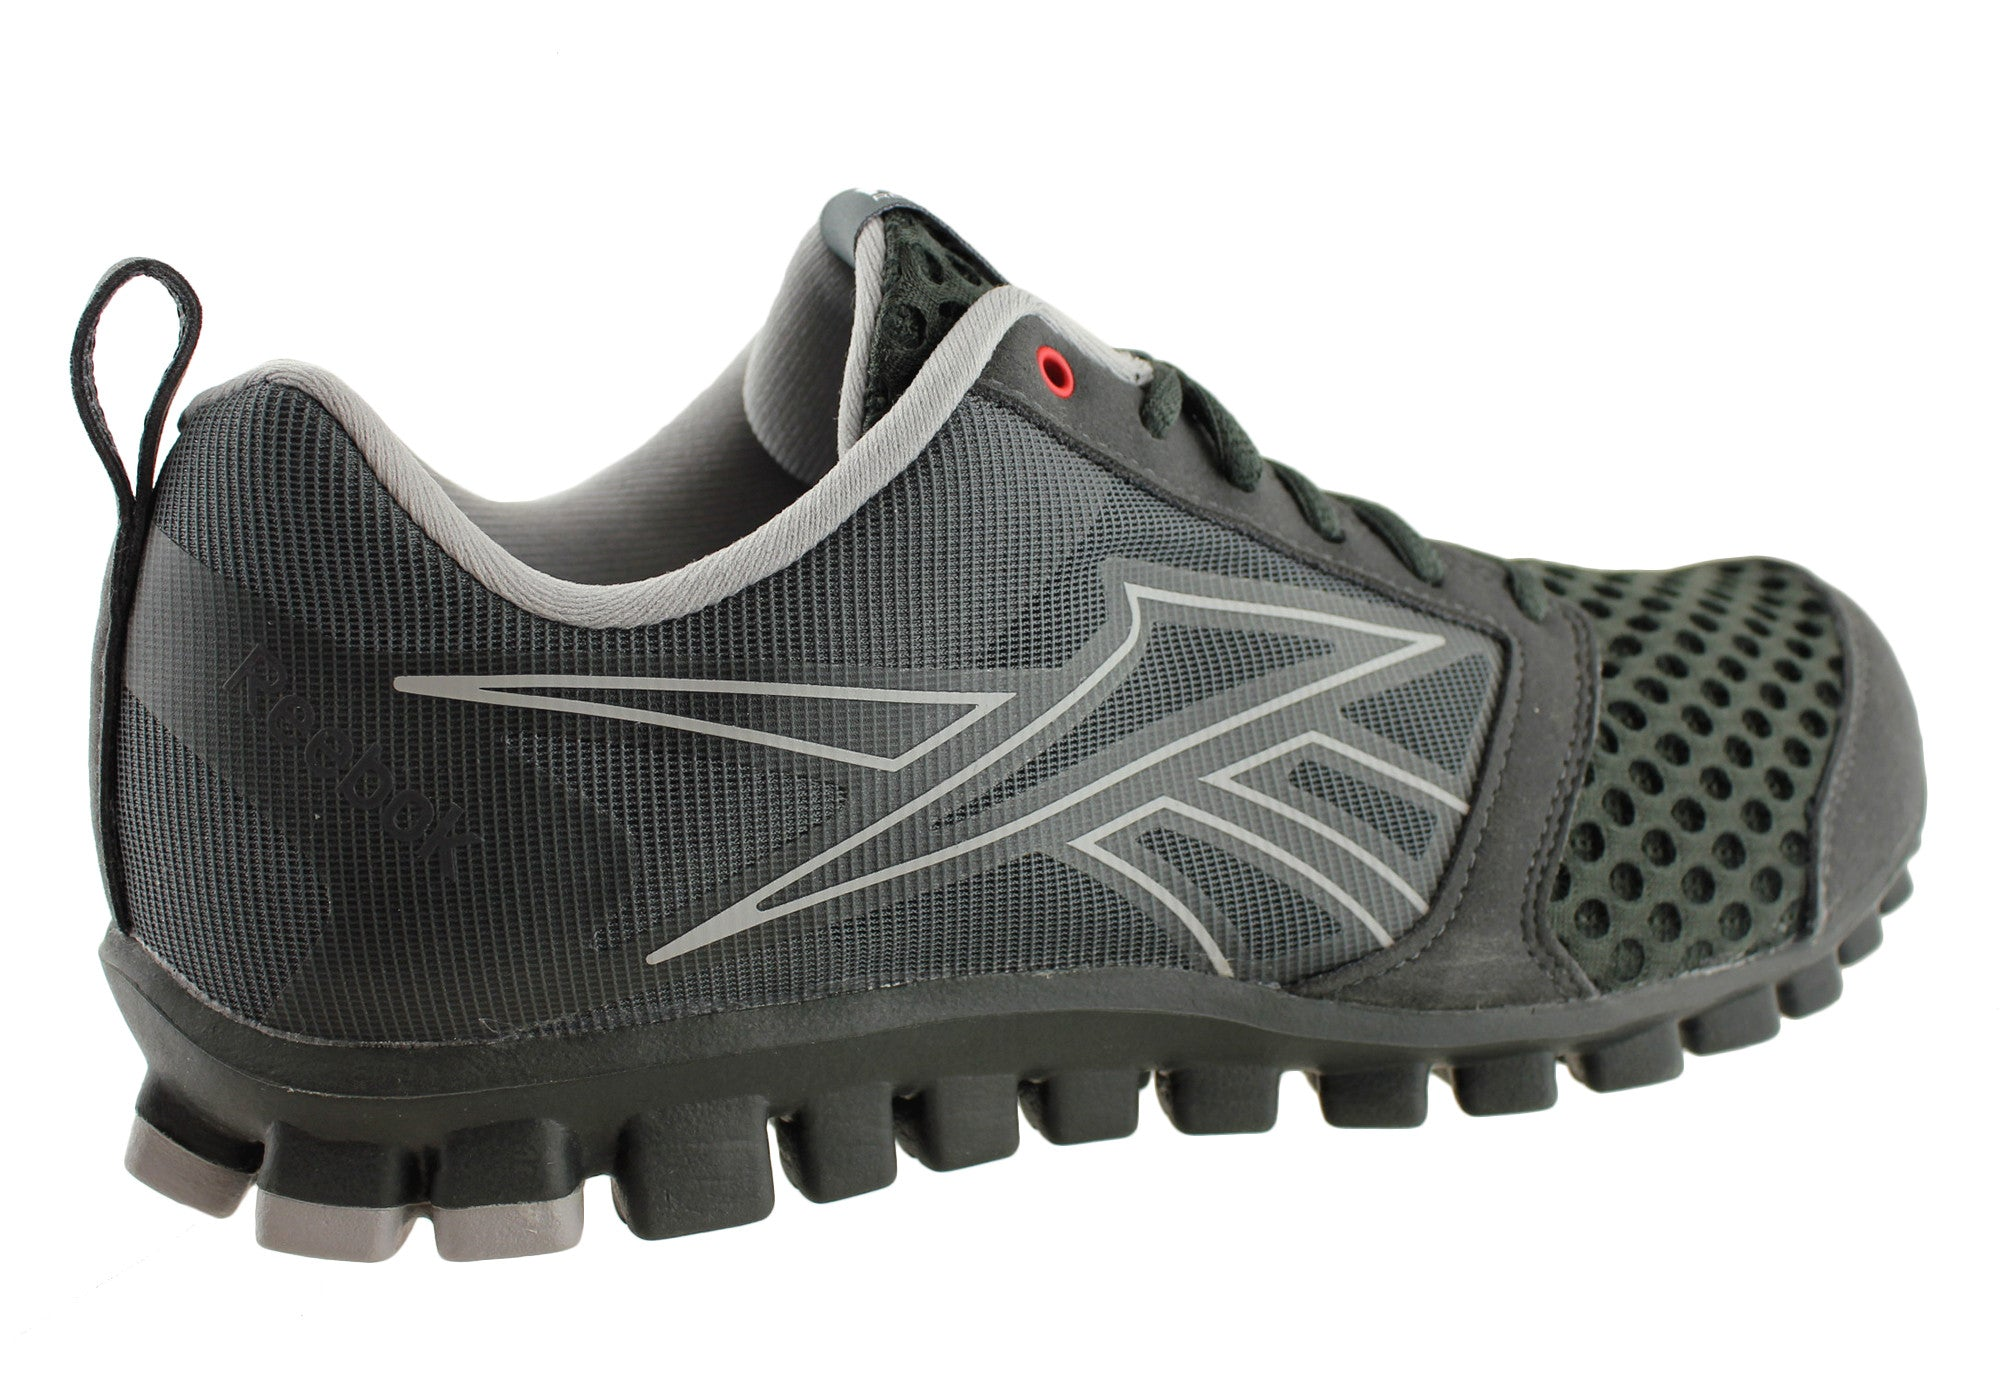 Reebok Realflex Scream 2.0 Mens Running Shoes